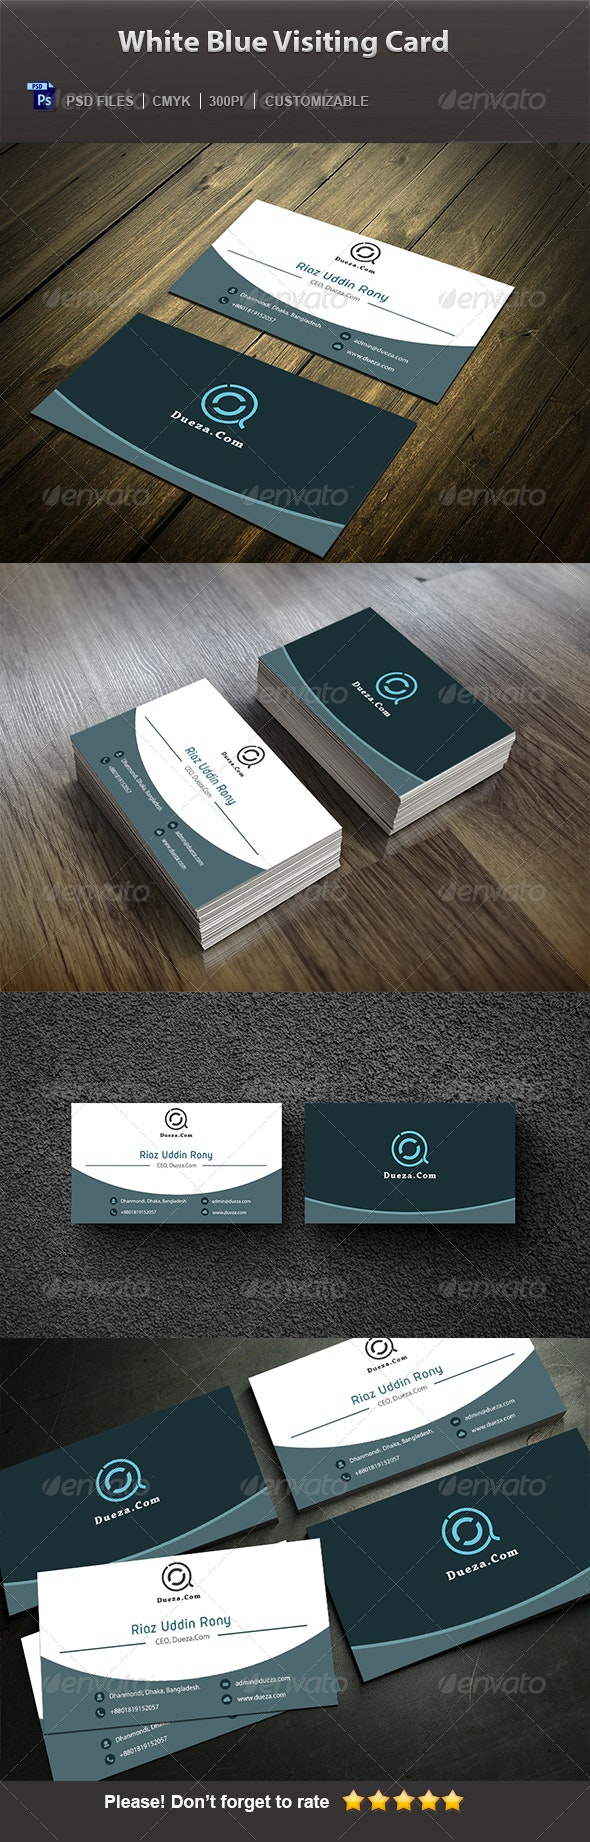 White Blue Visiting Card - Corporate Business Cards